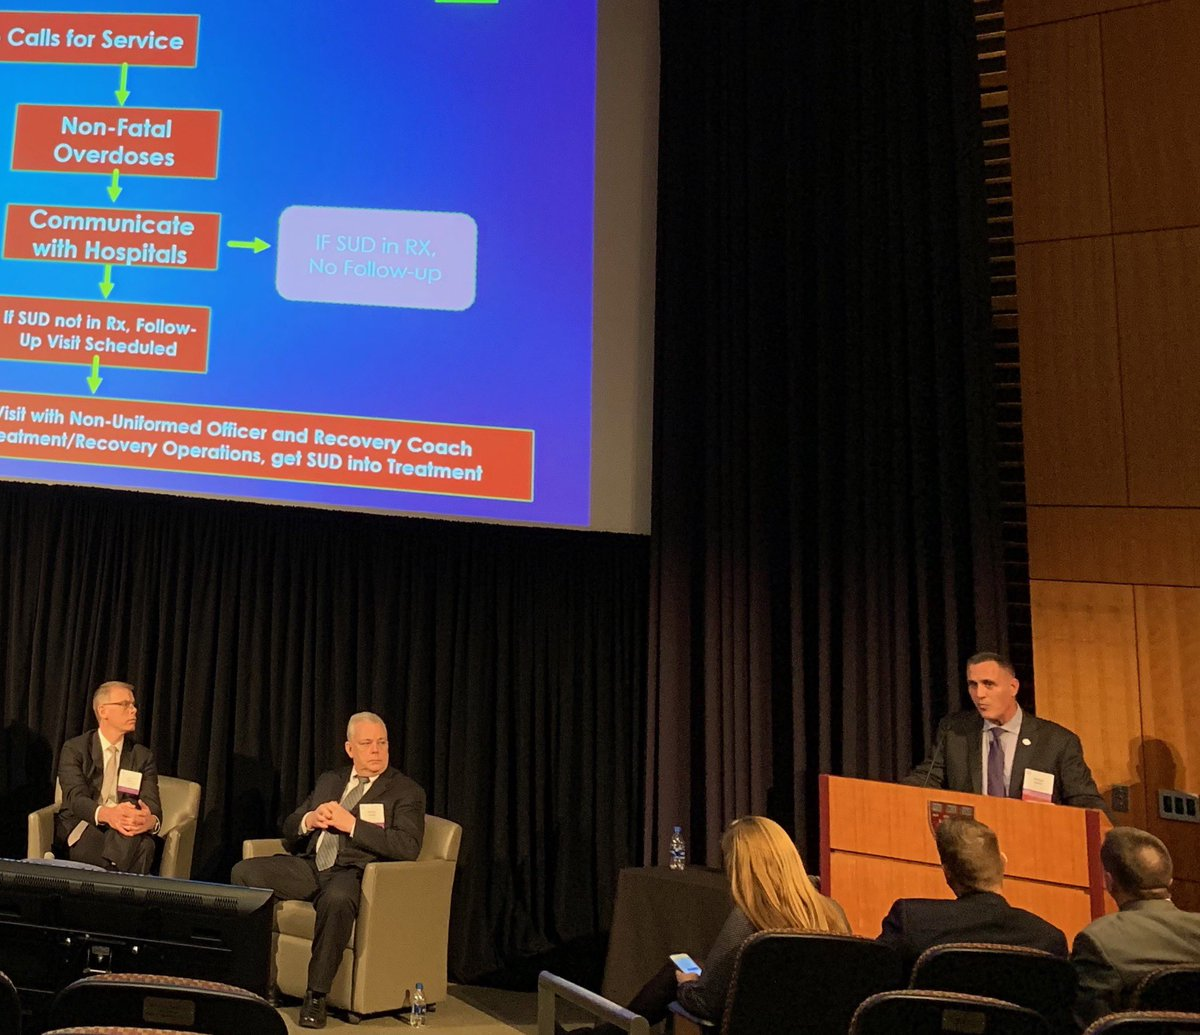 Chief Botieri of Plymouth and Chief Allen of East Bridgewater PD's present on the Plymouth County Outreach program. Innovative and progressive approach to addressing the opioid crisis. #PAARISummit2018 <br>http://pic.twitter.com/Lzts53b63a